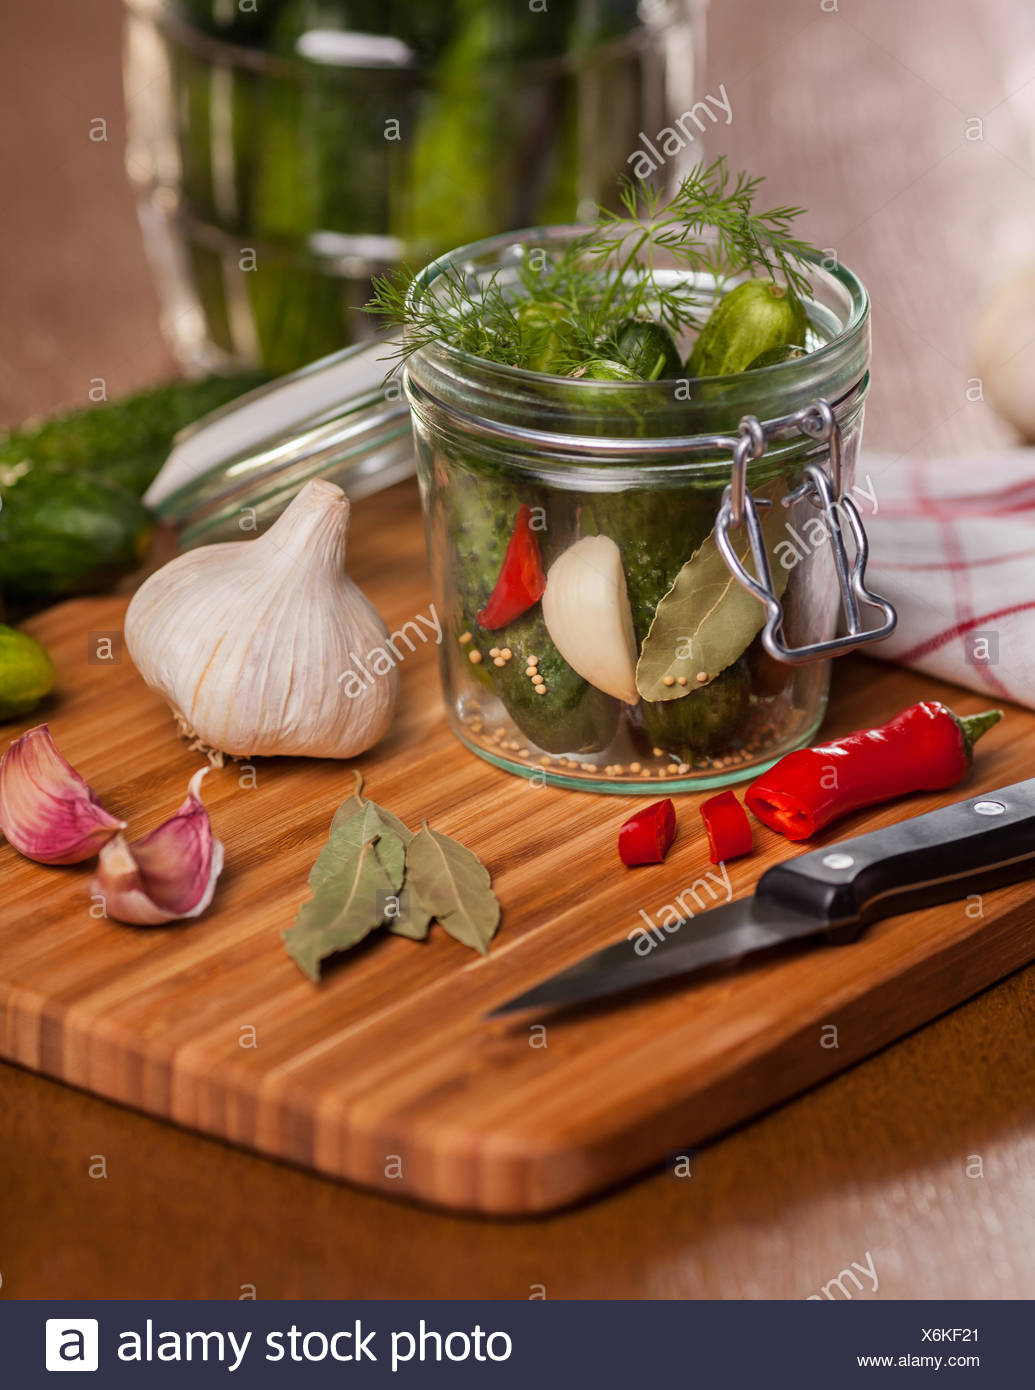 Pickled cucumbers on cutting board. Debica, Poland - Stock Image